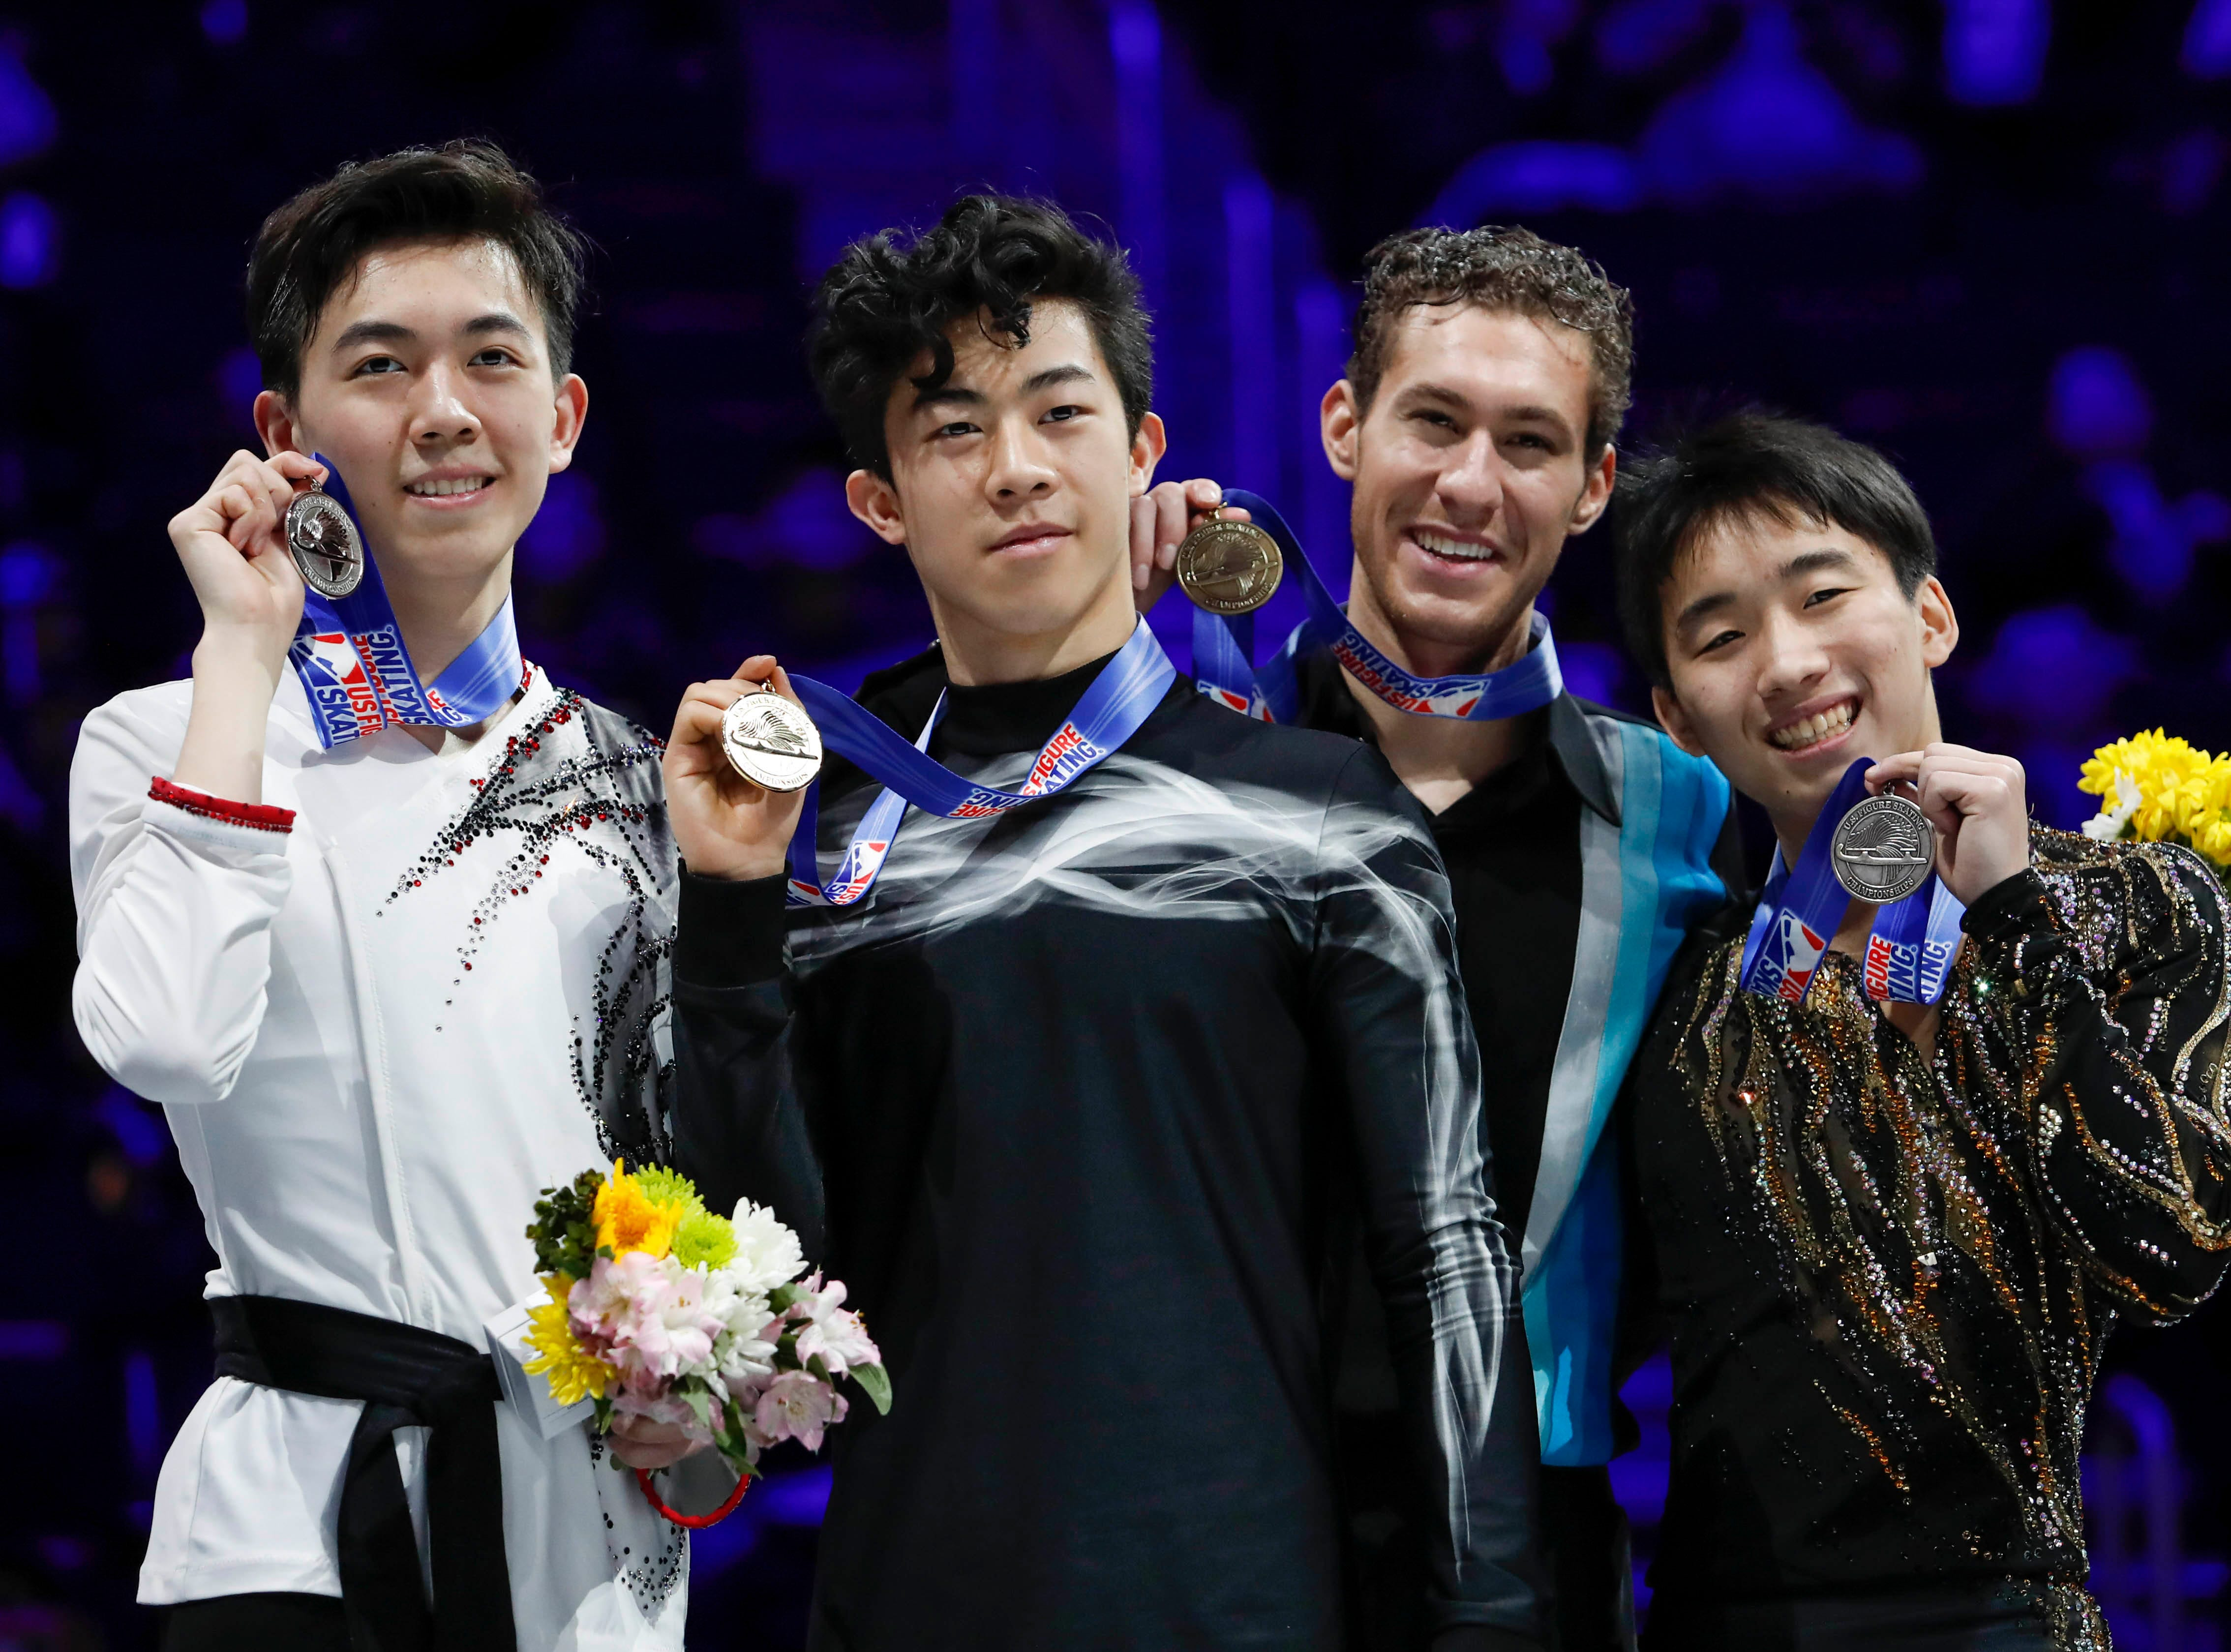 (Left to right) Vincent Zhou (silver medal), Nathan Chen (gold medal), Jason Brown (bronze medal) and Tomoki Hiwatashi (pewter medal) celebrate during the award ceremony for the senior men's championship at the 2019 Geico U.S. Figure Skating Championships.